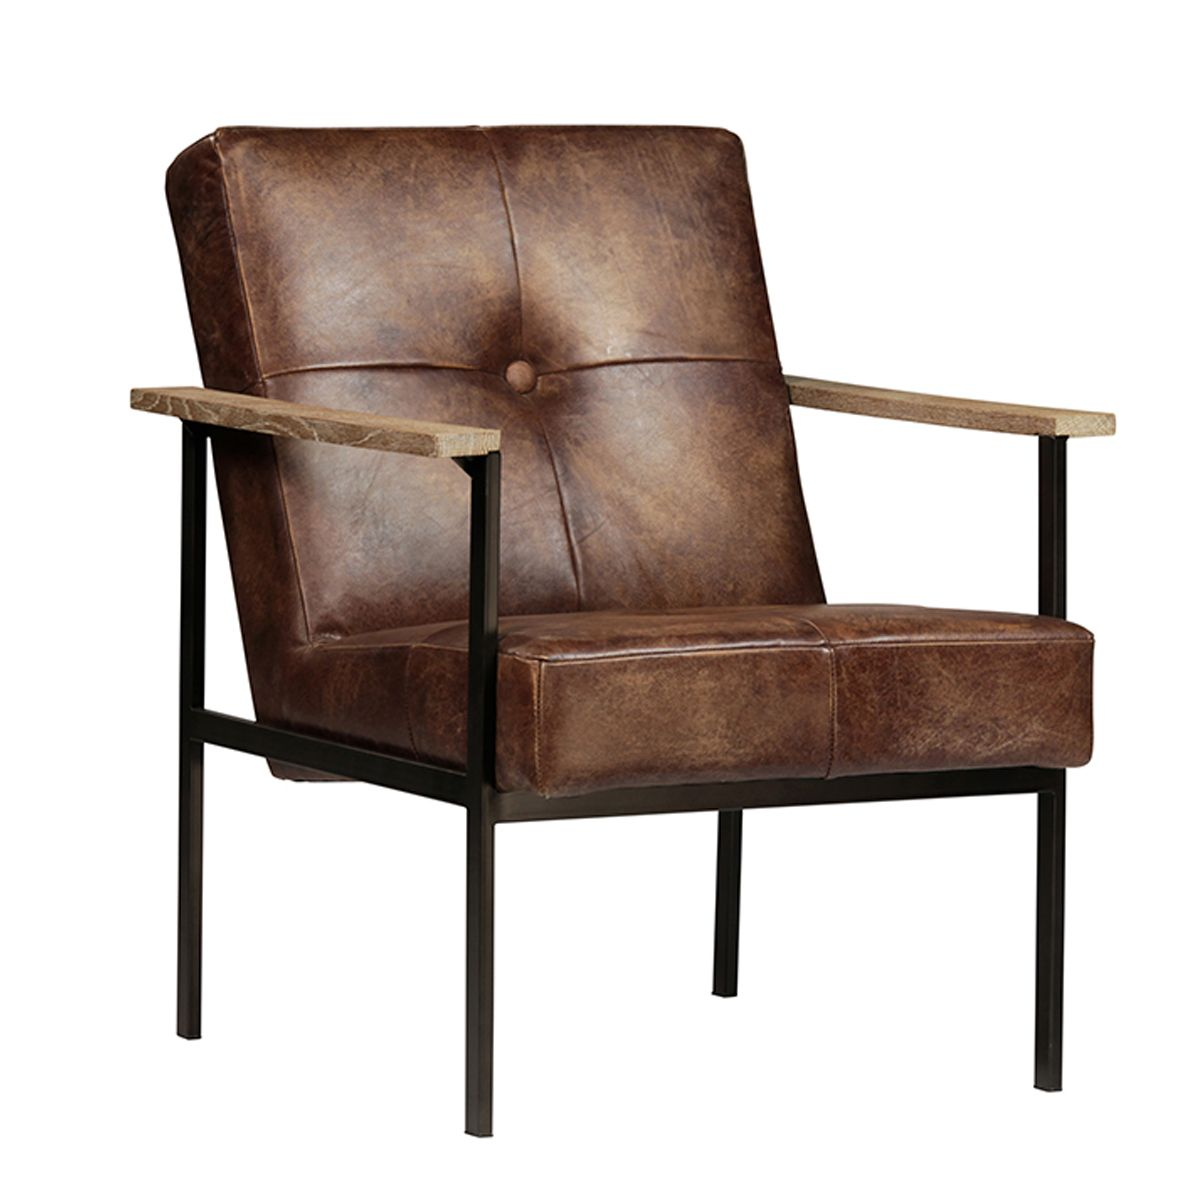 Groovy Aged Leather Club Chair With White Wash Wood Arms And Black Interior Design Ideas Gentotryabchikinfo